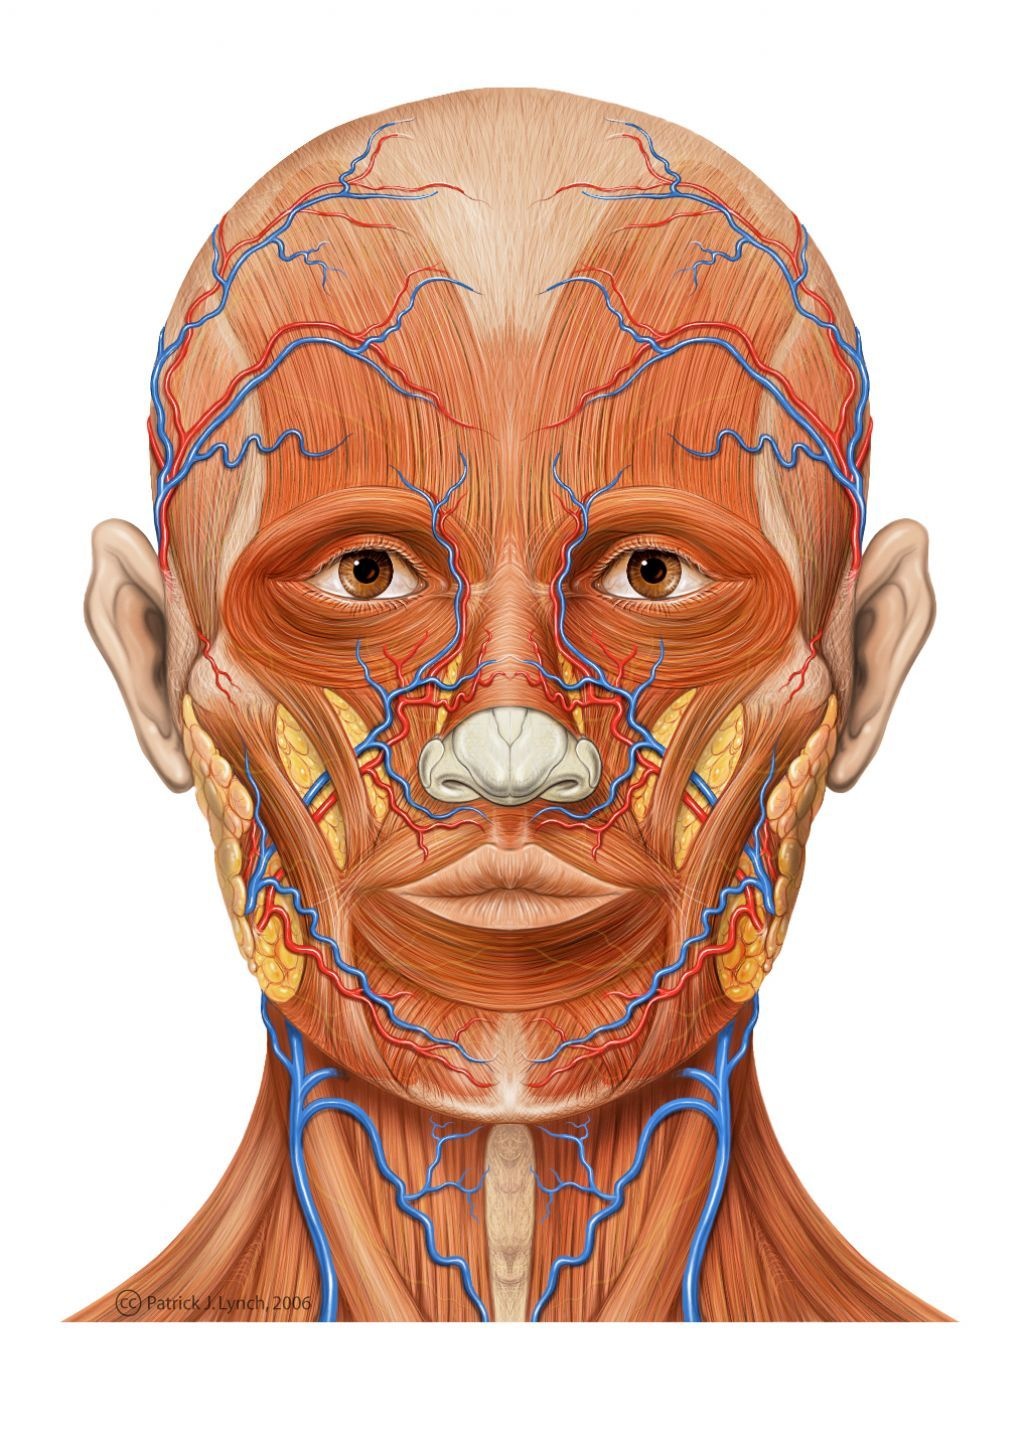 Anatomi Of Human Muscle Face With Images